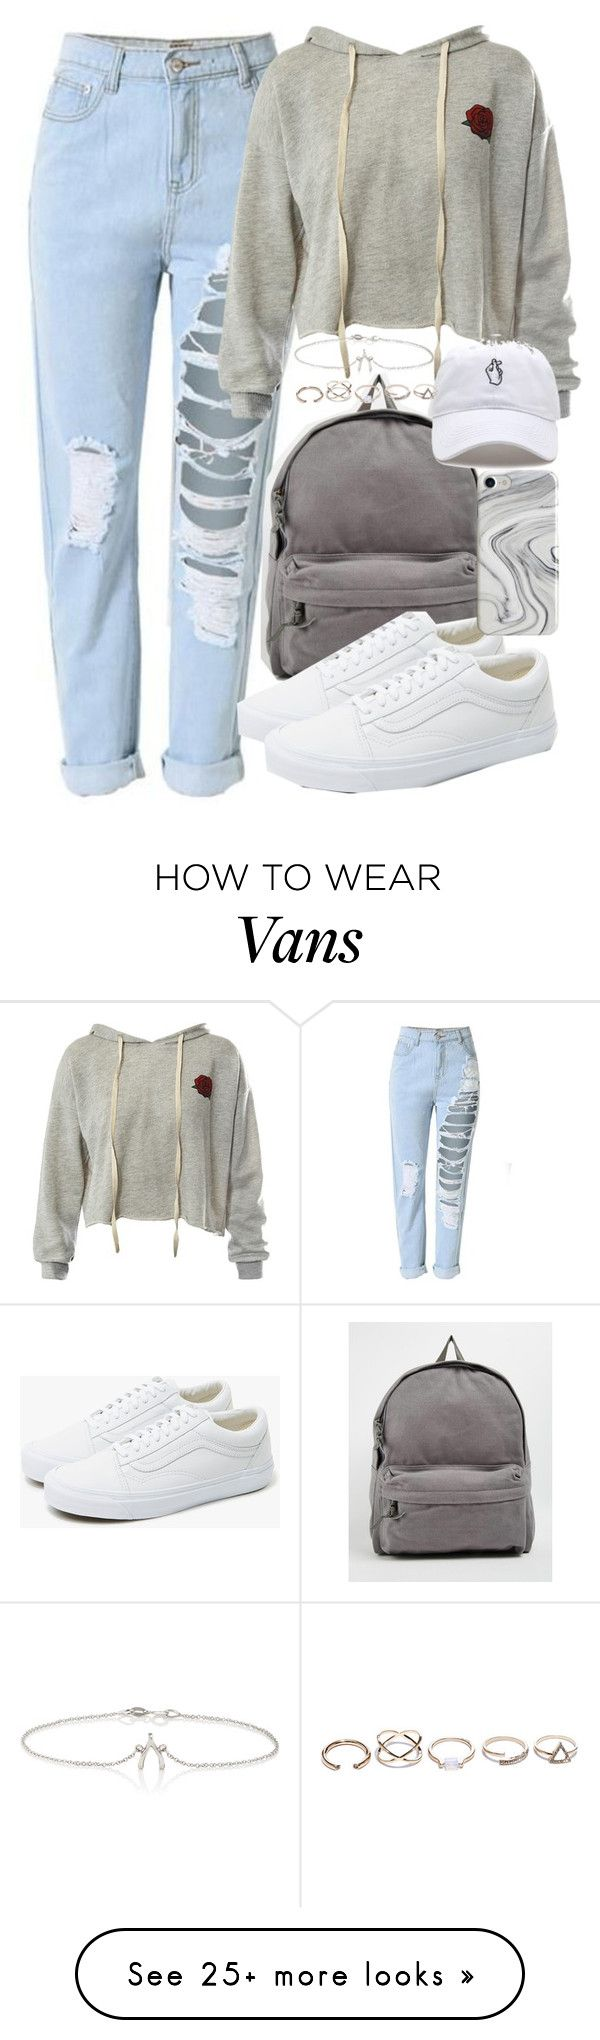 """Jet Set: Airport Style"" by smirnova-varya on Polyvore featuring Sans Souci, Buji Baja, Vans, Recover, GUESS, Jennifer Meyer Jewelry and airportstyle"